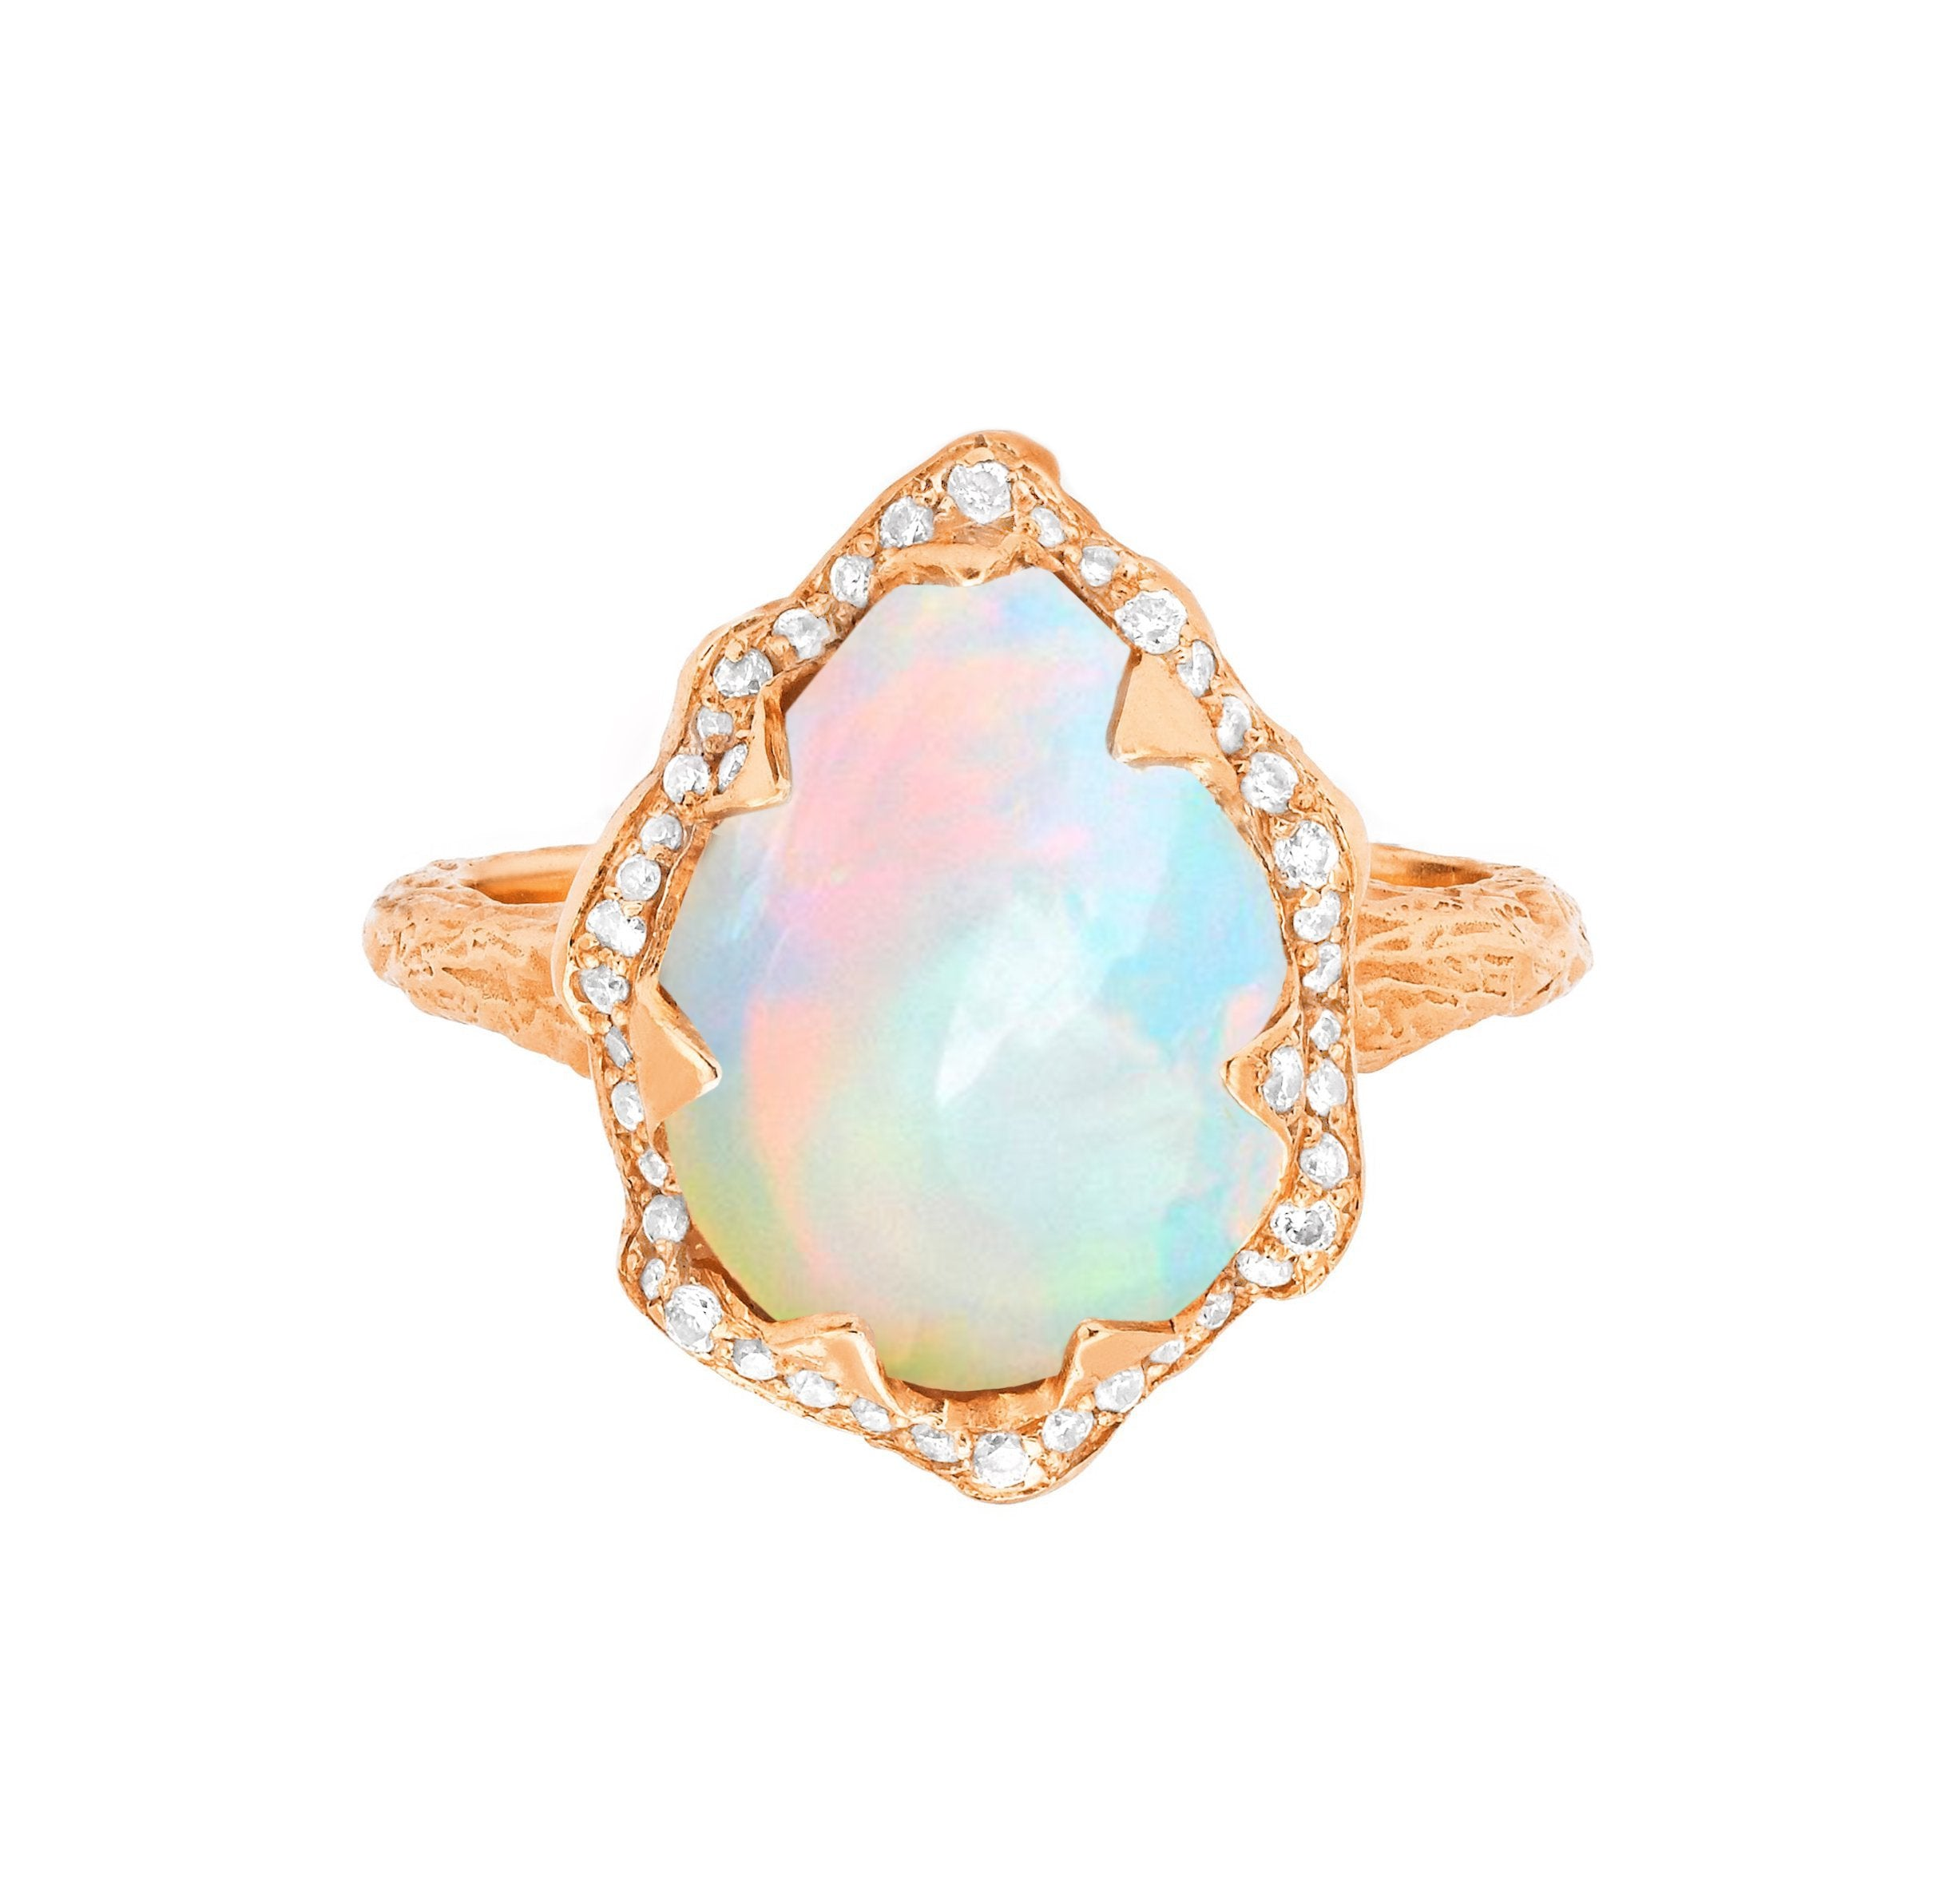 Queen Water Drop Cabochon White Opal Ring with Full Pavé Diamond Halo